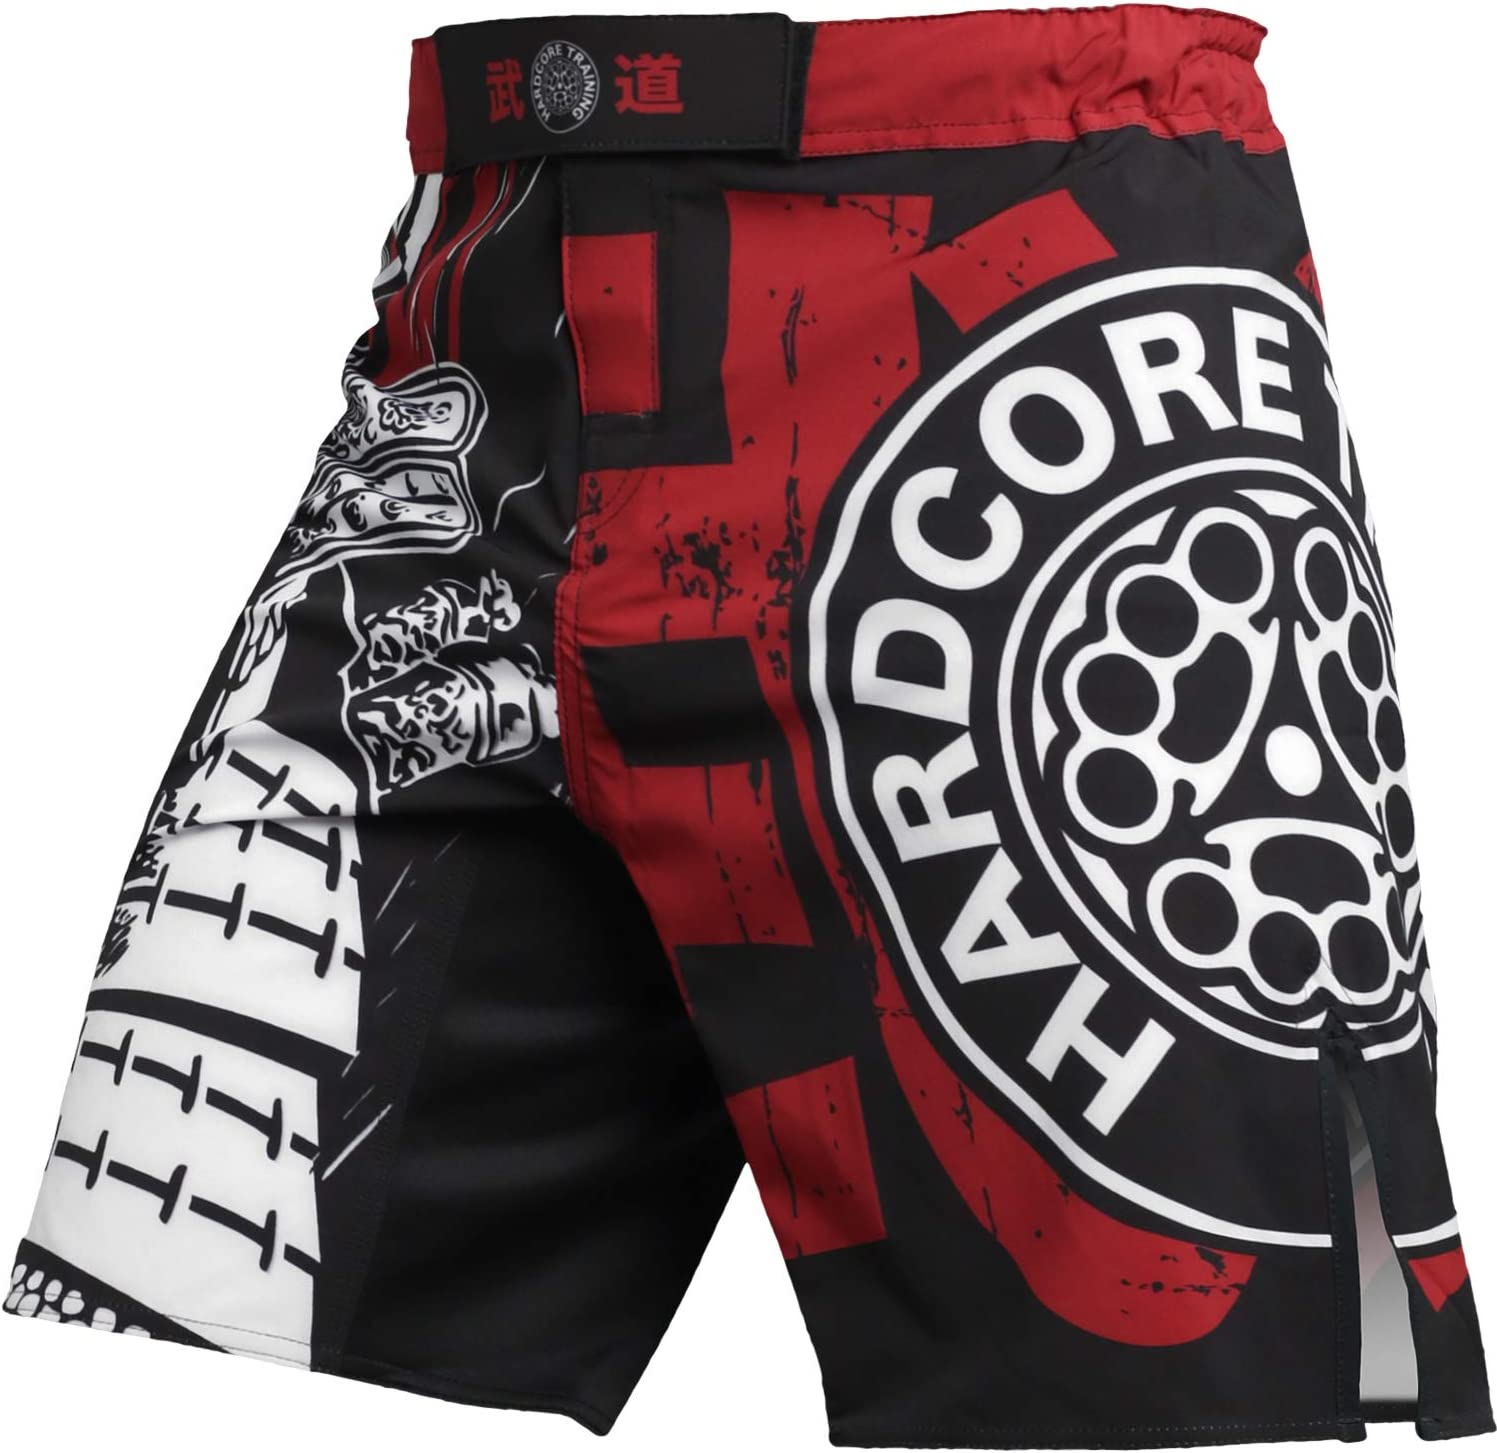 Hardcore Training Short for Men Budo Fighting Shorts Cage Fight Boxing No-Gi Fitness MMA BJJ Fitness dentrainement Homme Boxe Cage Fight Muay Thai